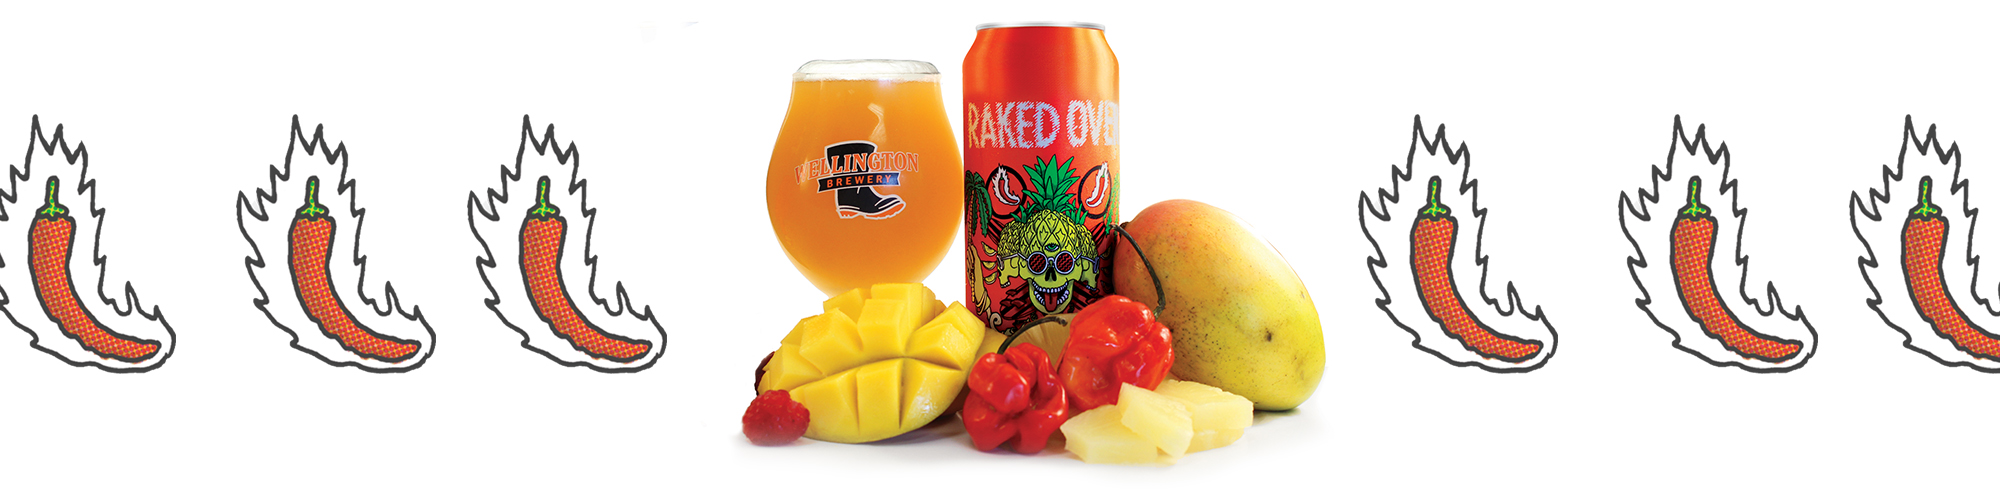 Raked Over IPA with Mango Pineapple and Habanero